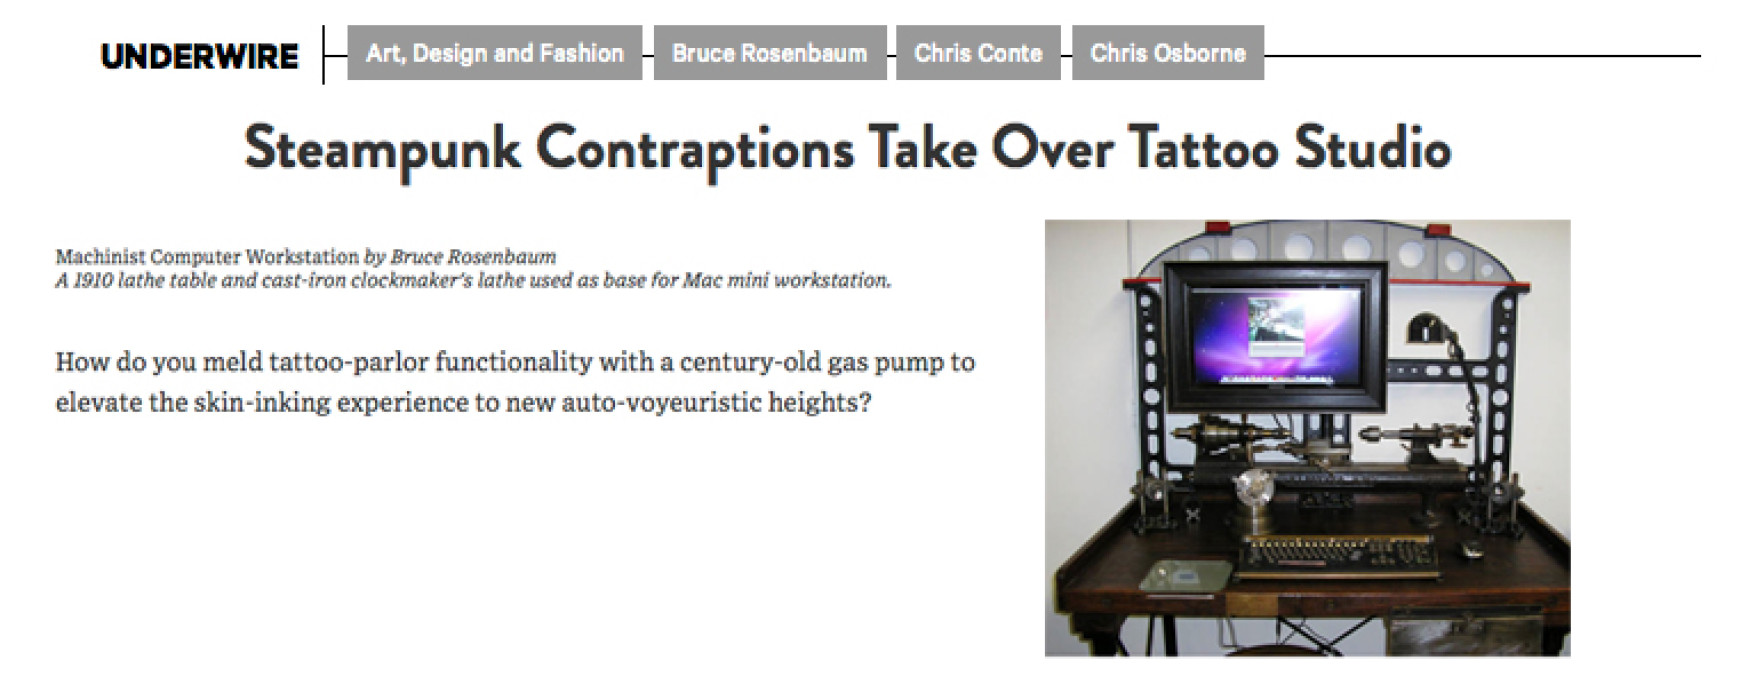 Wired Magazine: Steampunk contraptions take over tattoo studio - Modvic